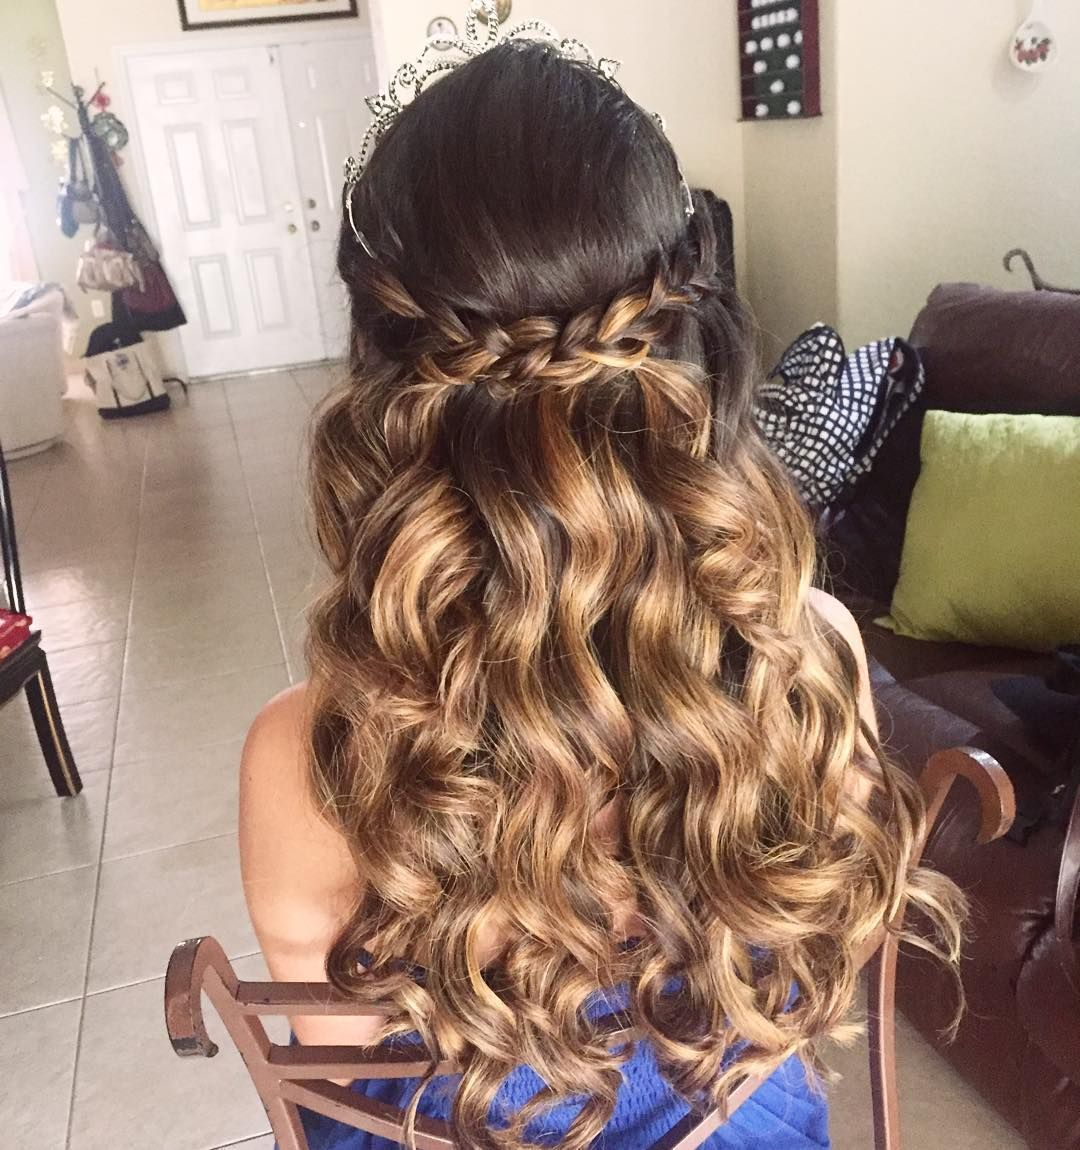 Quinceanera Hairstyles Fair 20 Absolutely Stunning Quinceanera Hairstyles With Crown